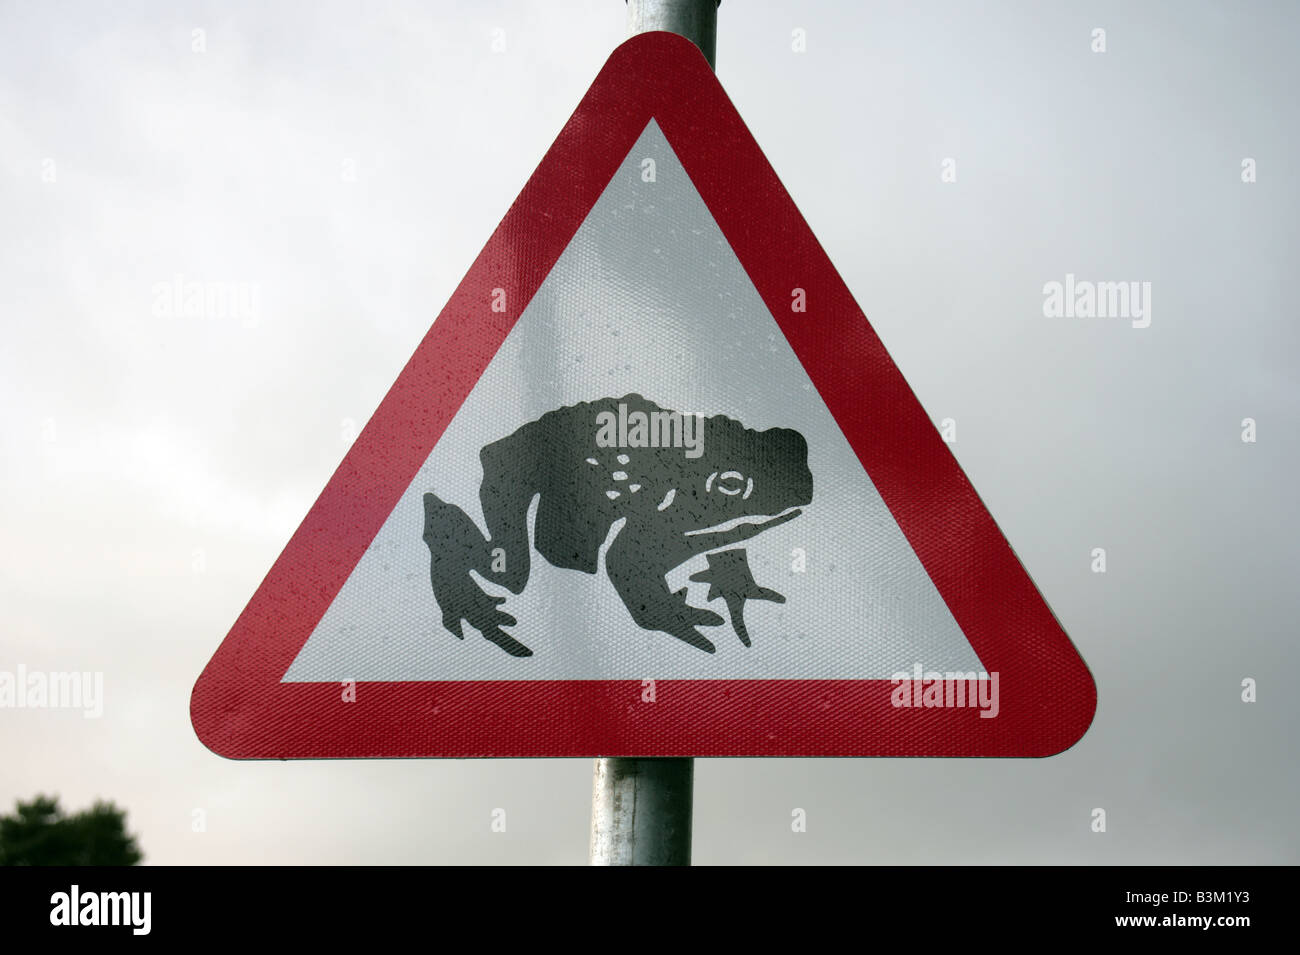 toads crossing warning road sign Machynnleth Wales - Stock Image